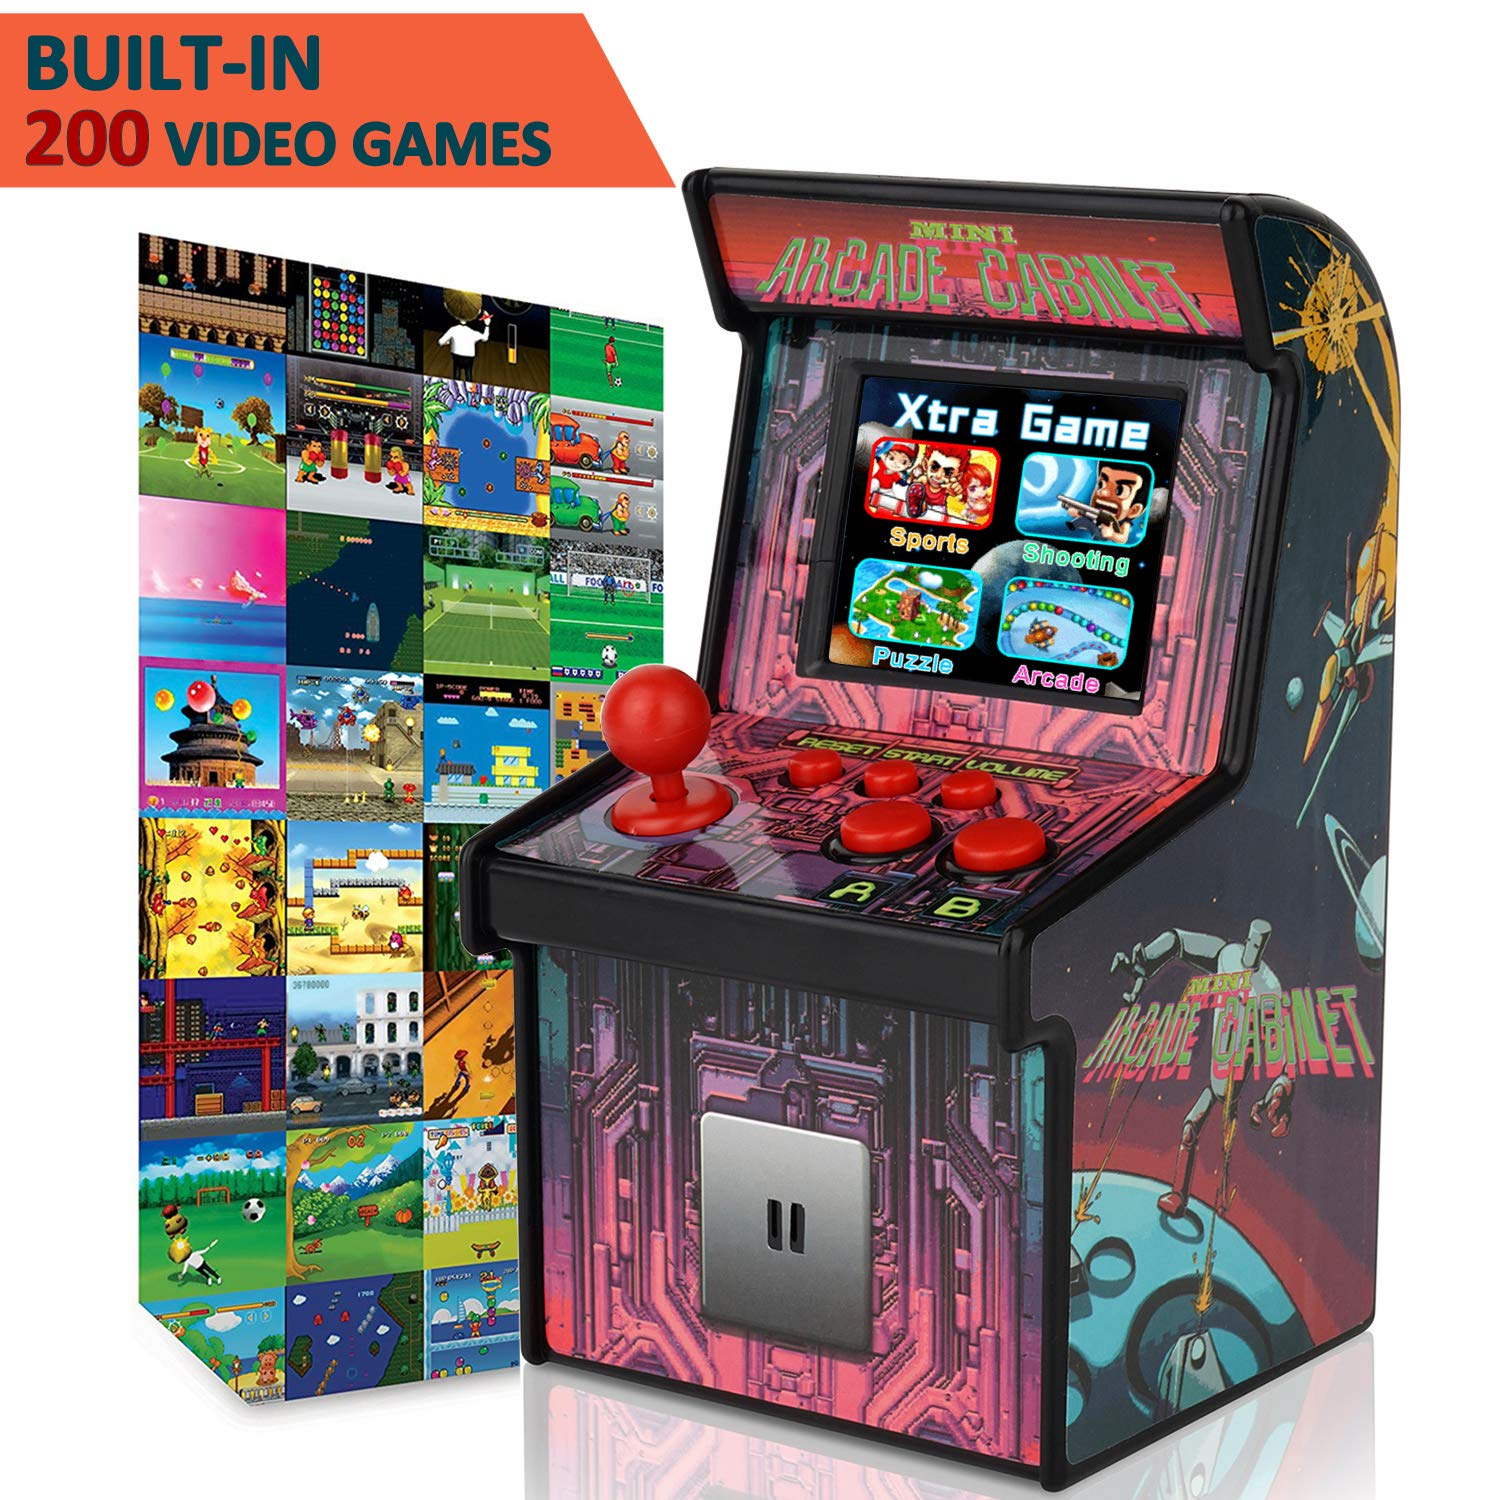 GBD Kids Mini Retro Arcade Game Cabinet Machine 200 Classic Handheld Video Games 2.5'' Display Joystick Travel Portable Game Player Kids Boys Girls Holiday Birthday Gifts Electronic Toys by GBD (Image #1)